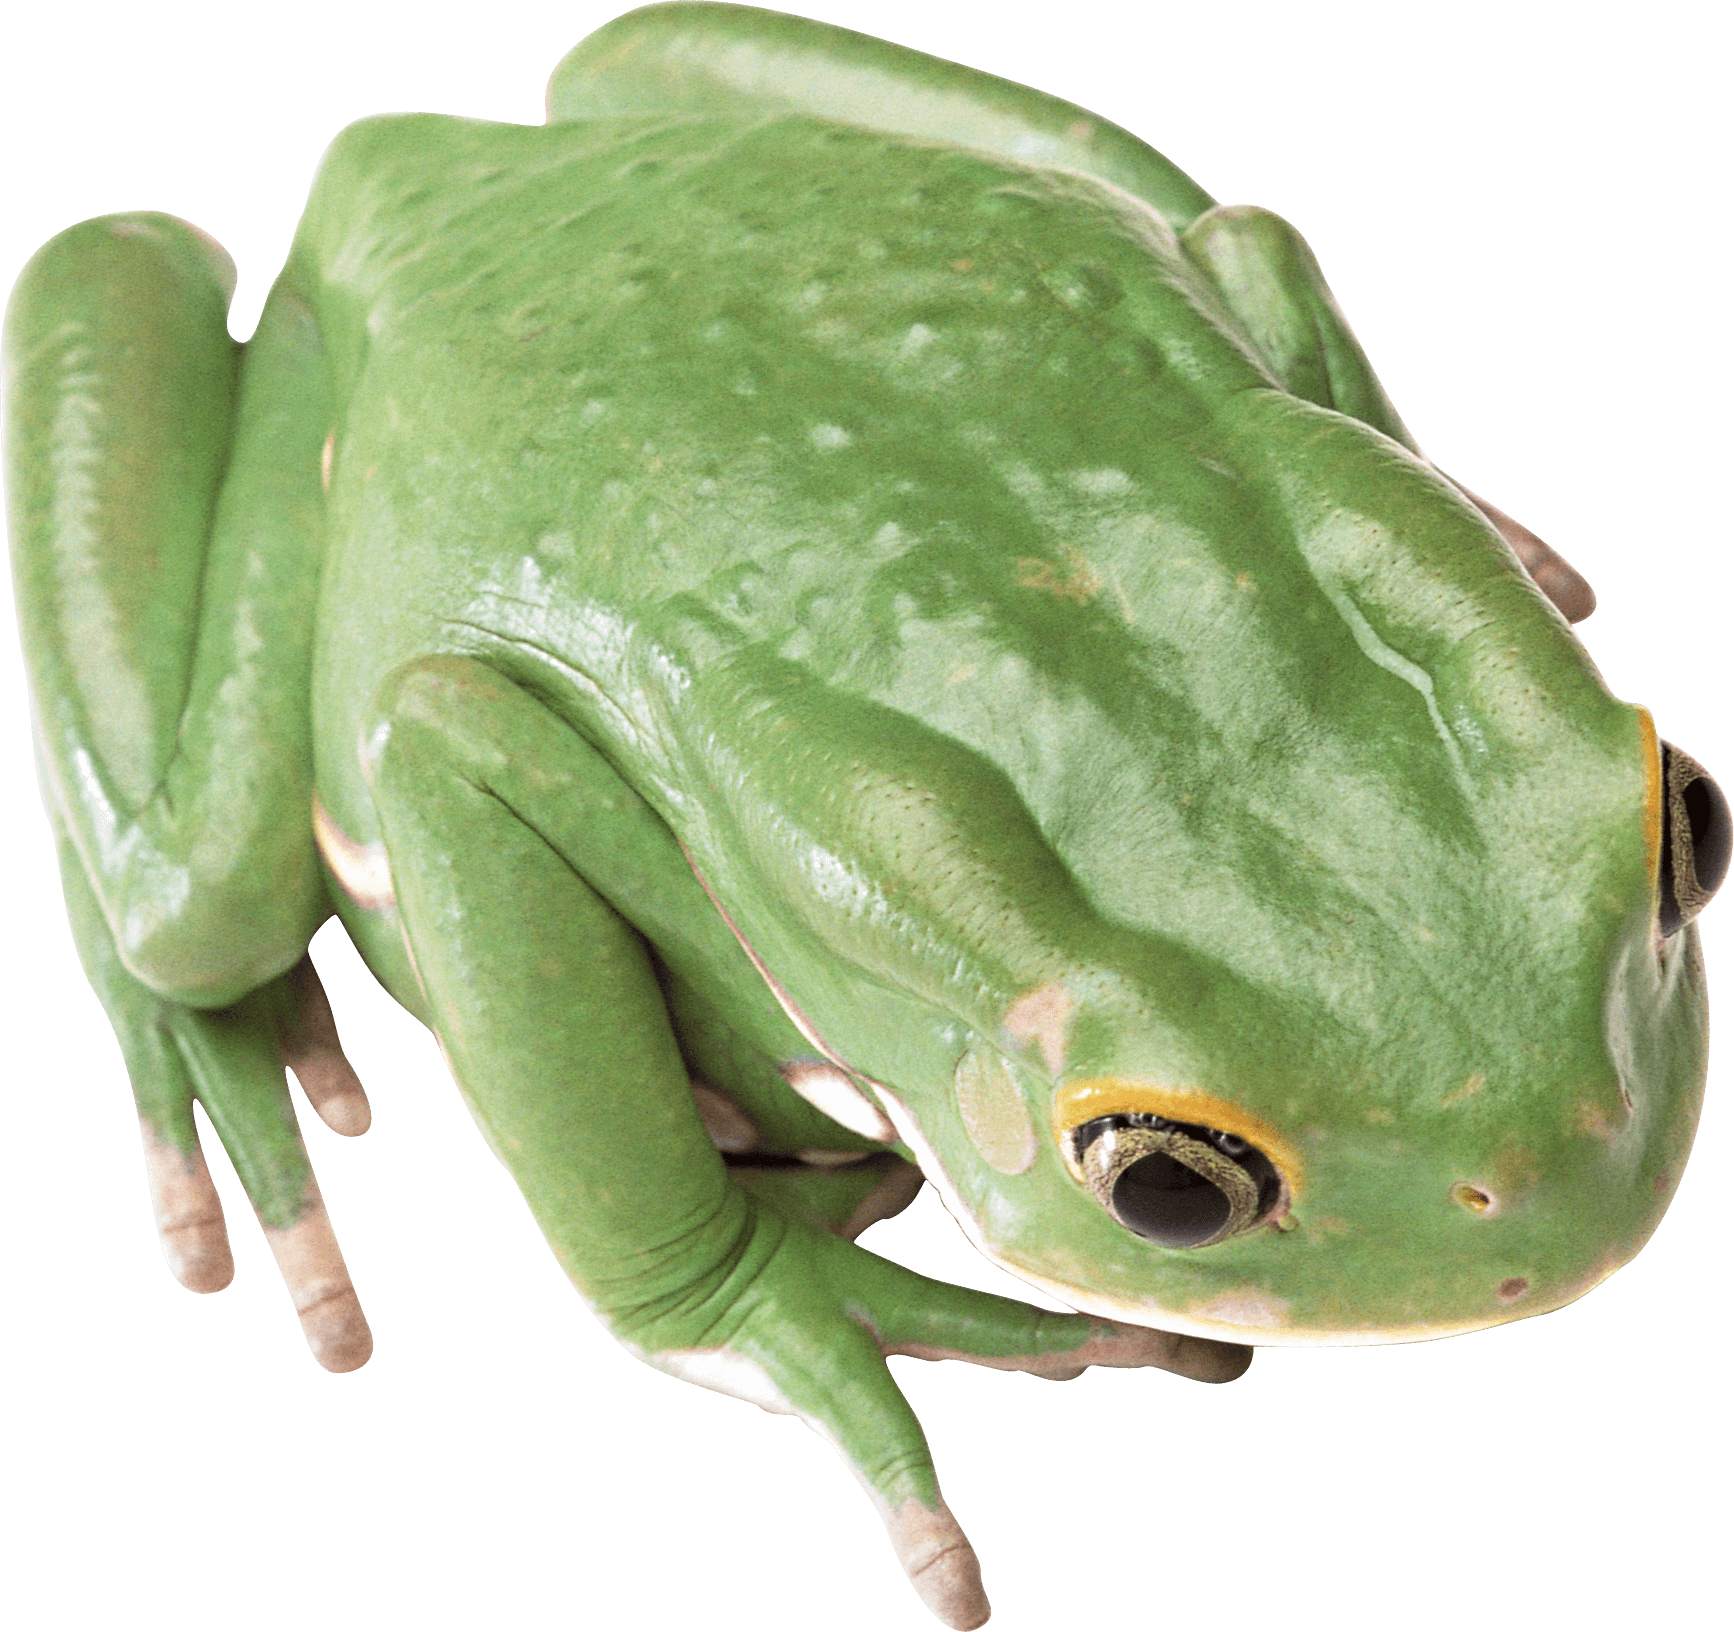 Green Frog Png Image Frog Png Tree Frogs